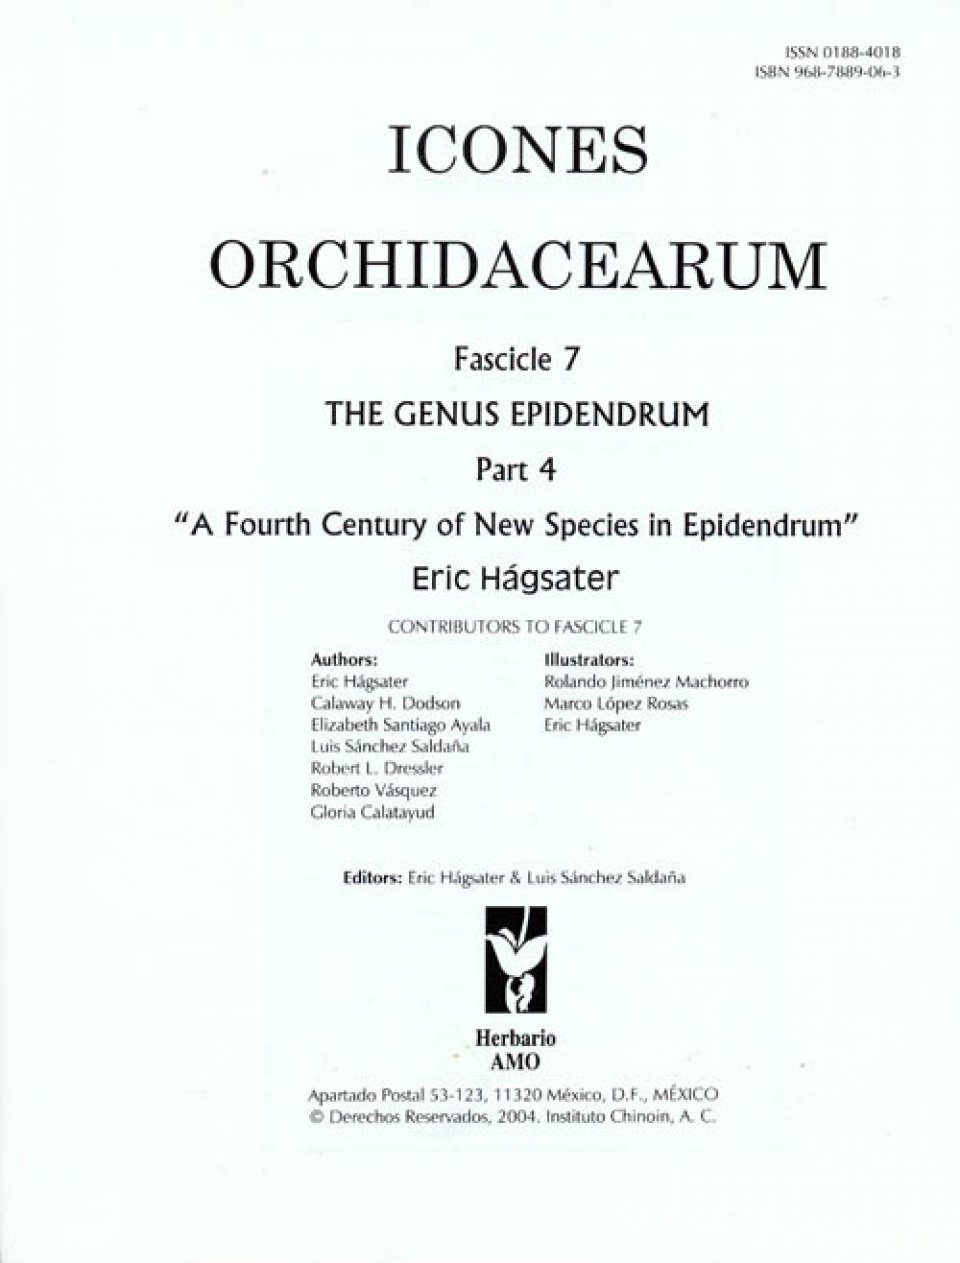 Icones Orchidacearum, Fascicle 7